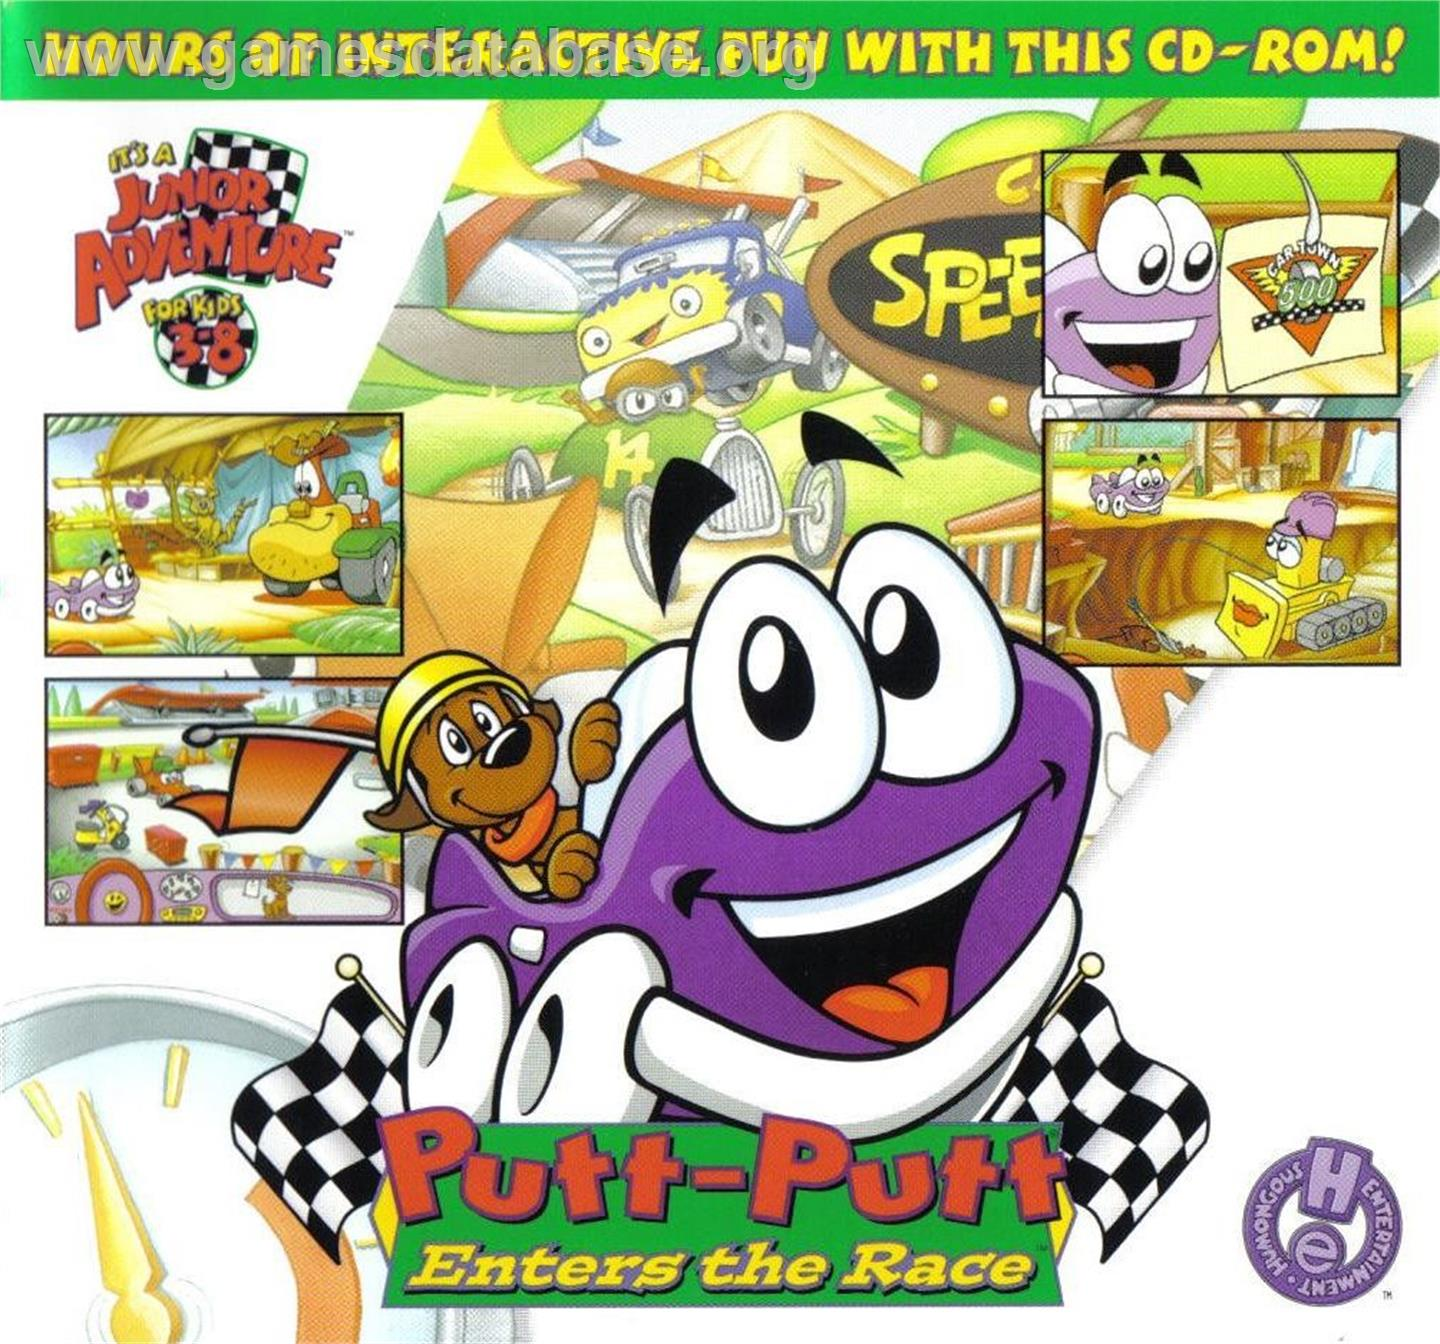 putt putt enters the race online game images